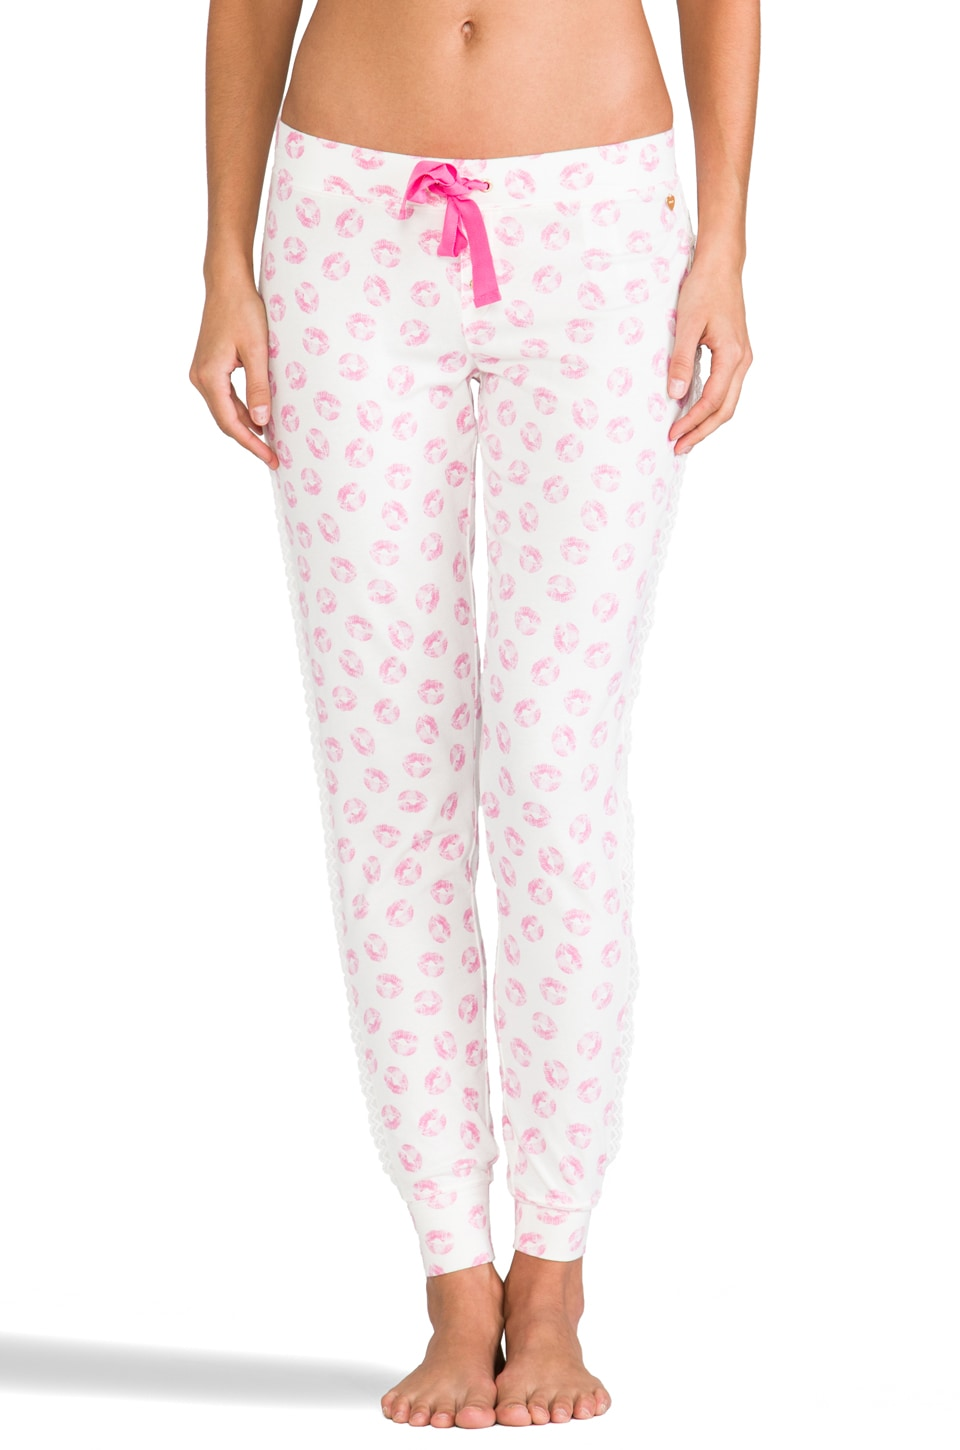 Juicy Couture Printed Model Pant in Angel Juicy Kiss